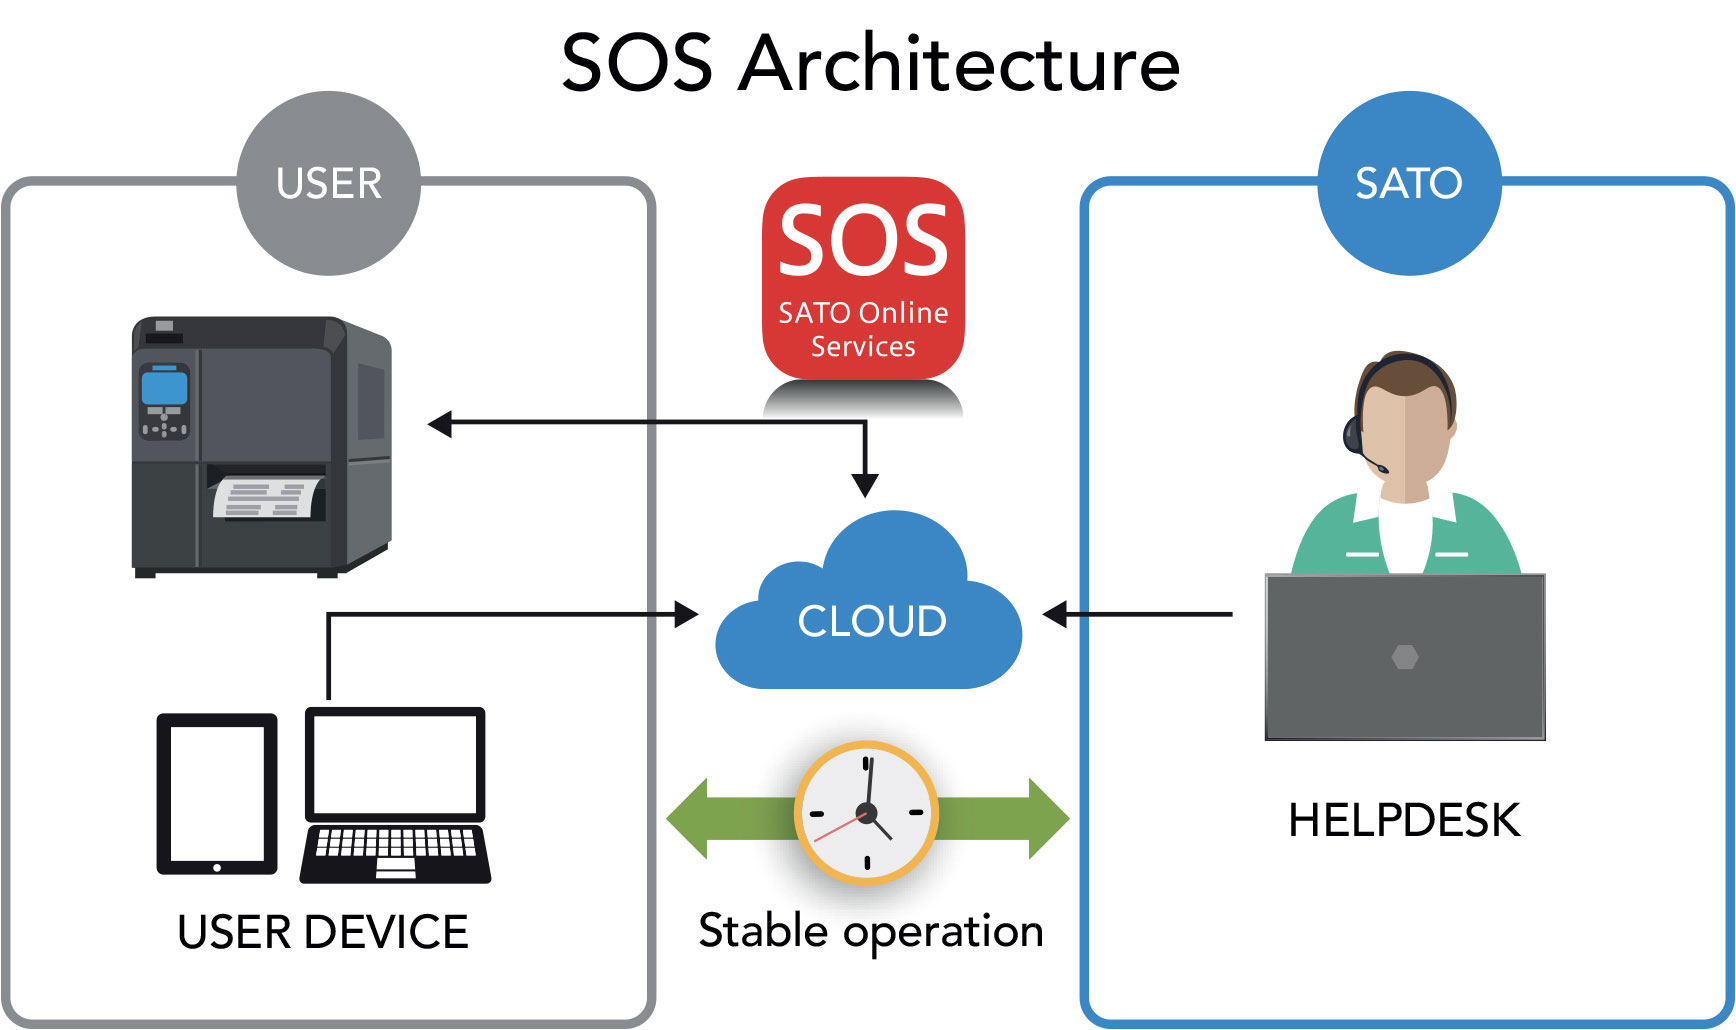 SOS Architecture illustration